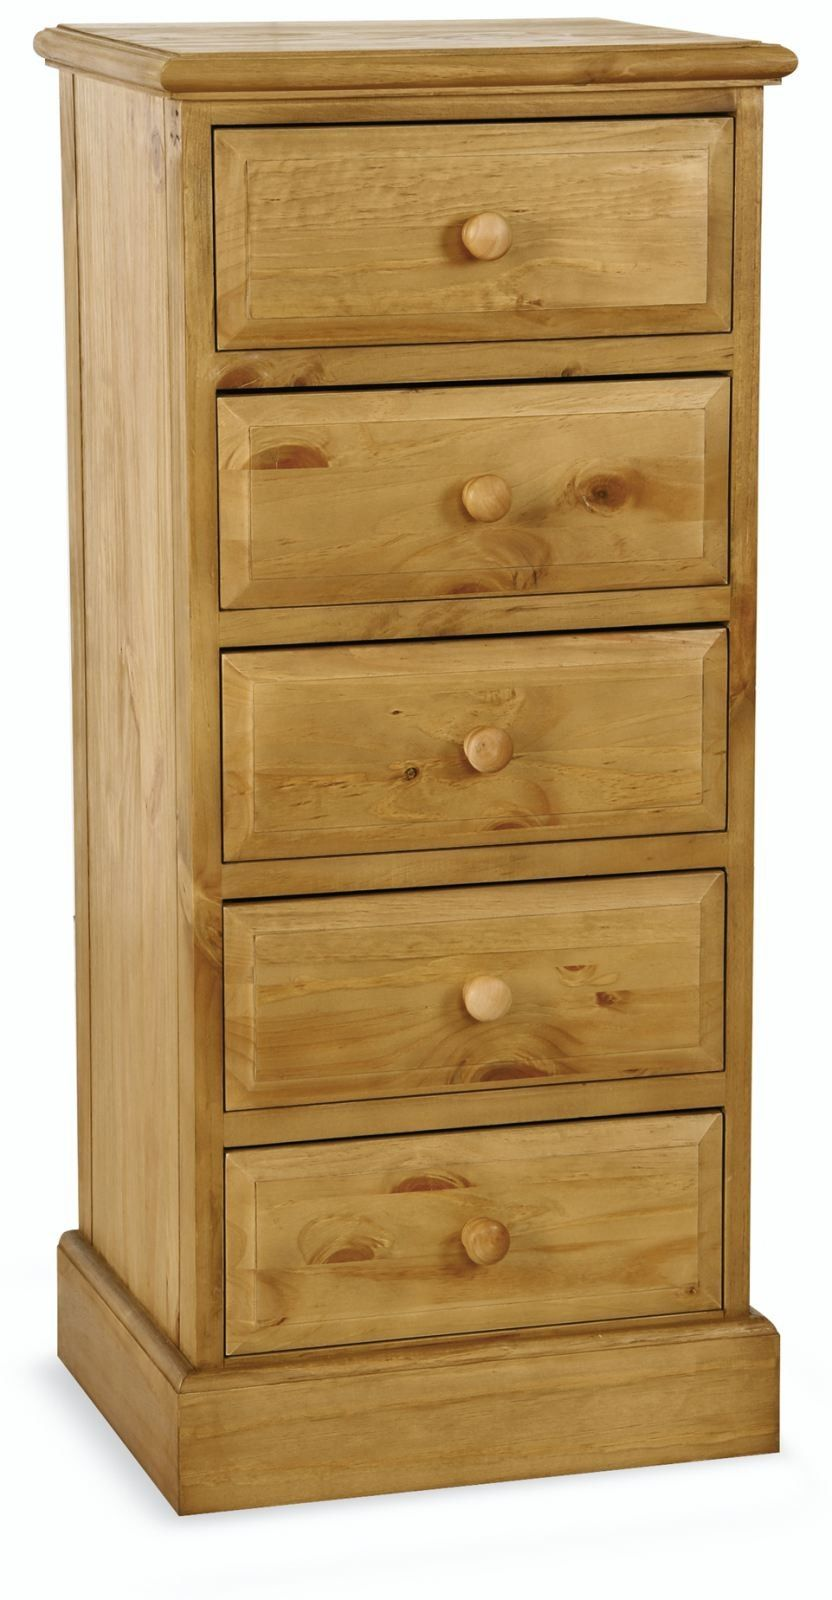 Country Pine 5 Drawer Wellington Chest Traditional Furniture Hills Furniture Store